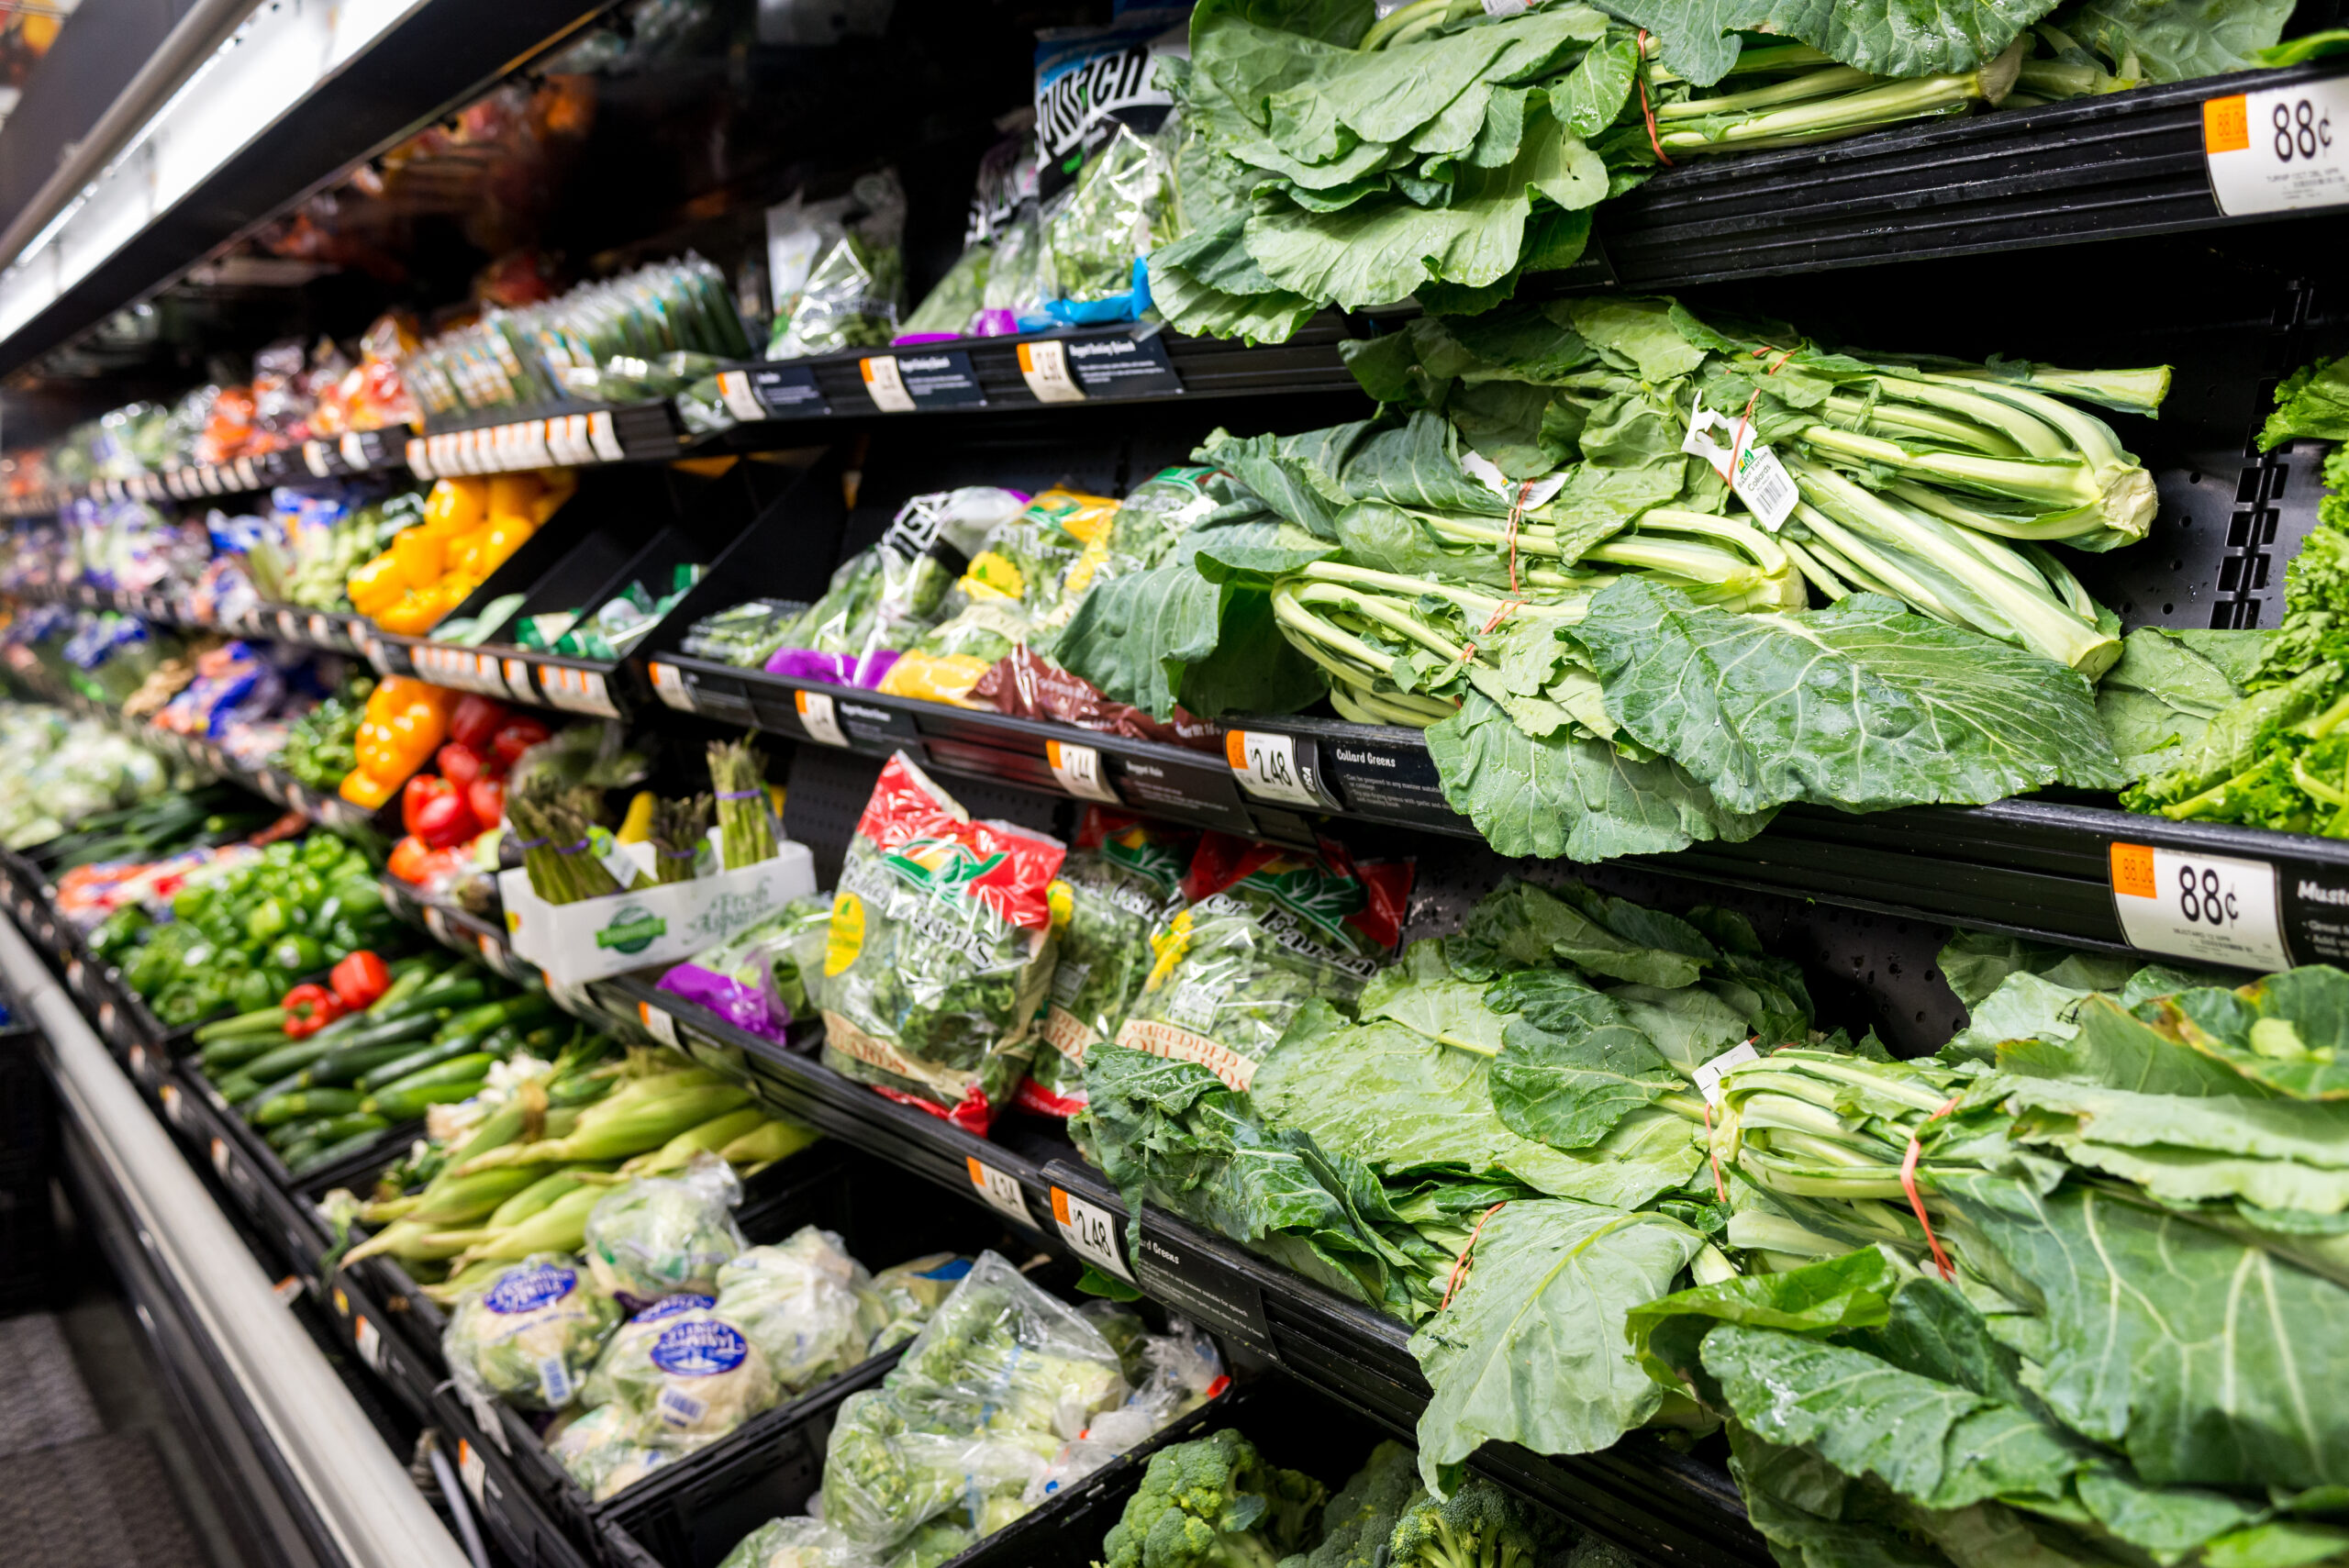 Produce at the monthly healthy shopping trip. Meridian, MS Tues, Nov. 24, 2020 (Photo By Revere Photography for Direct Relief)